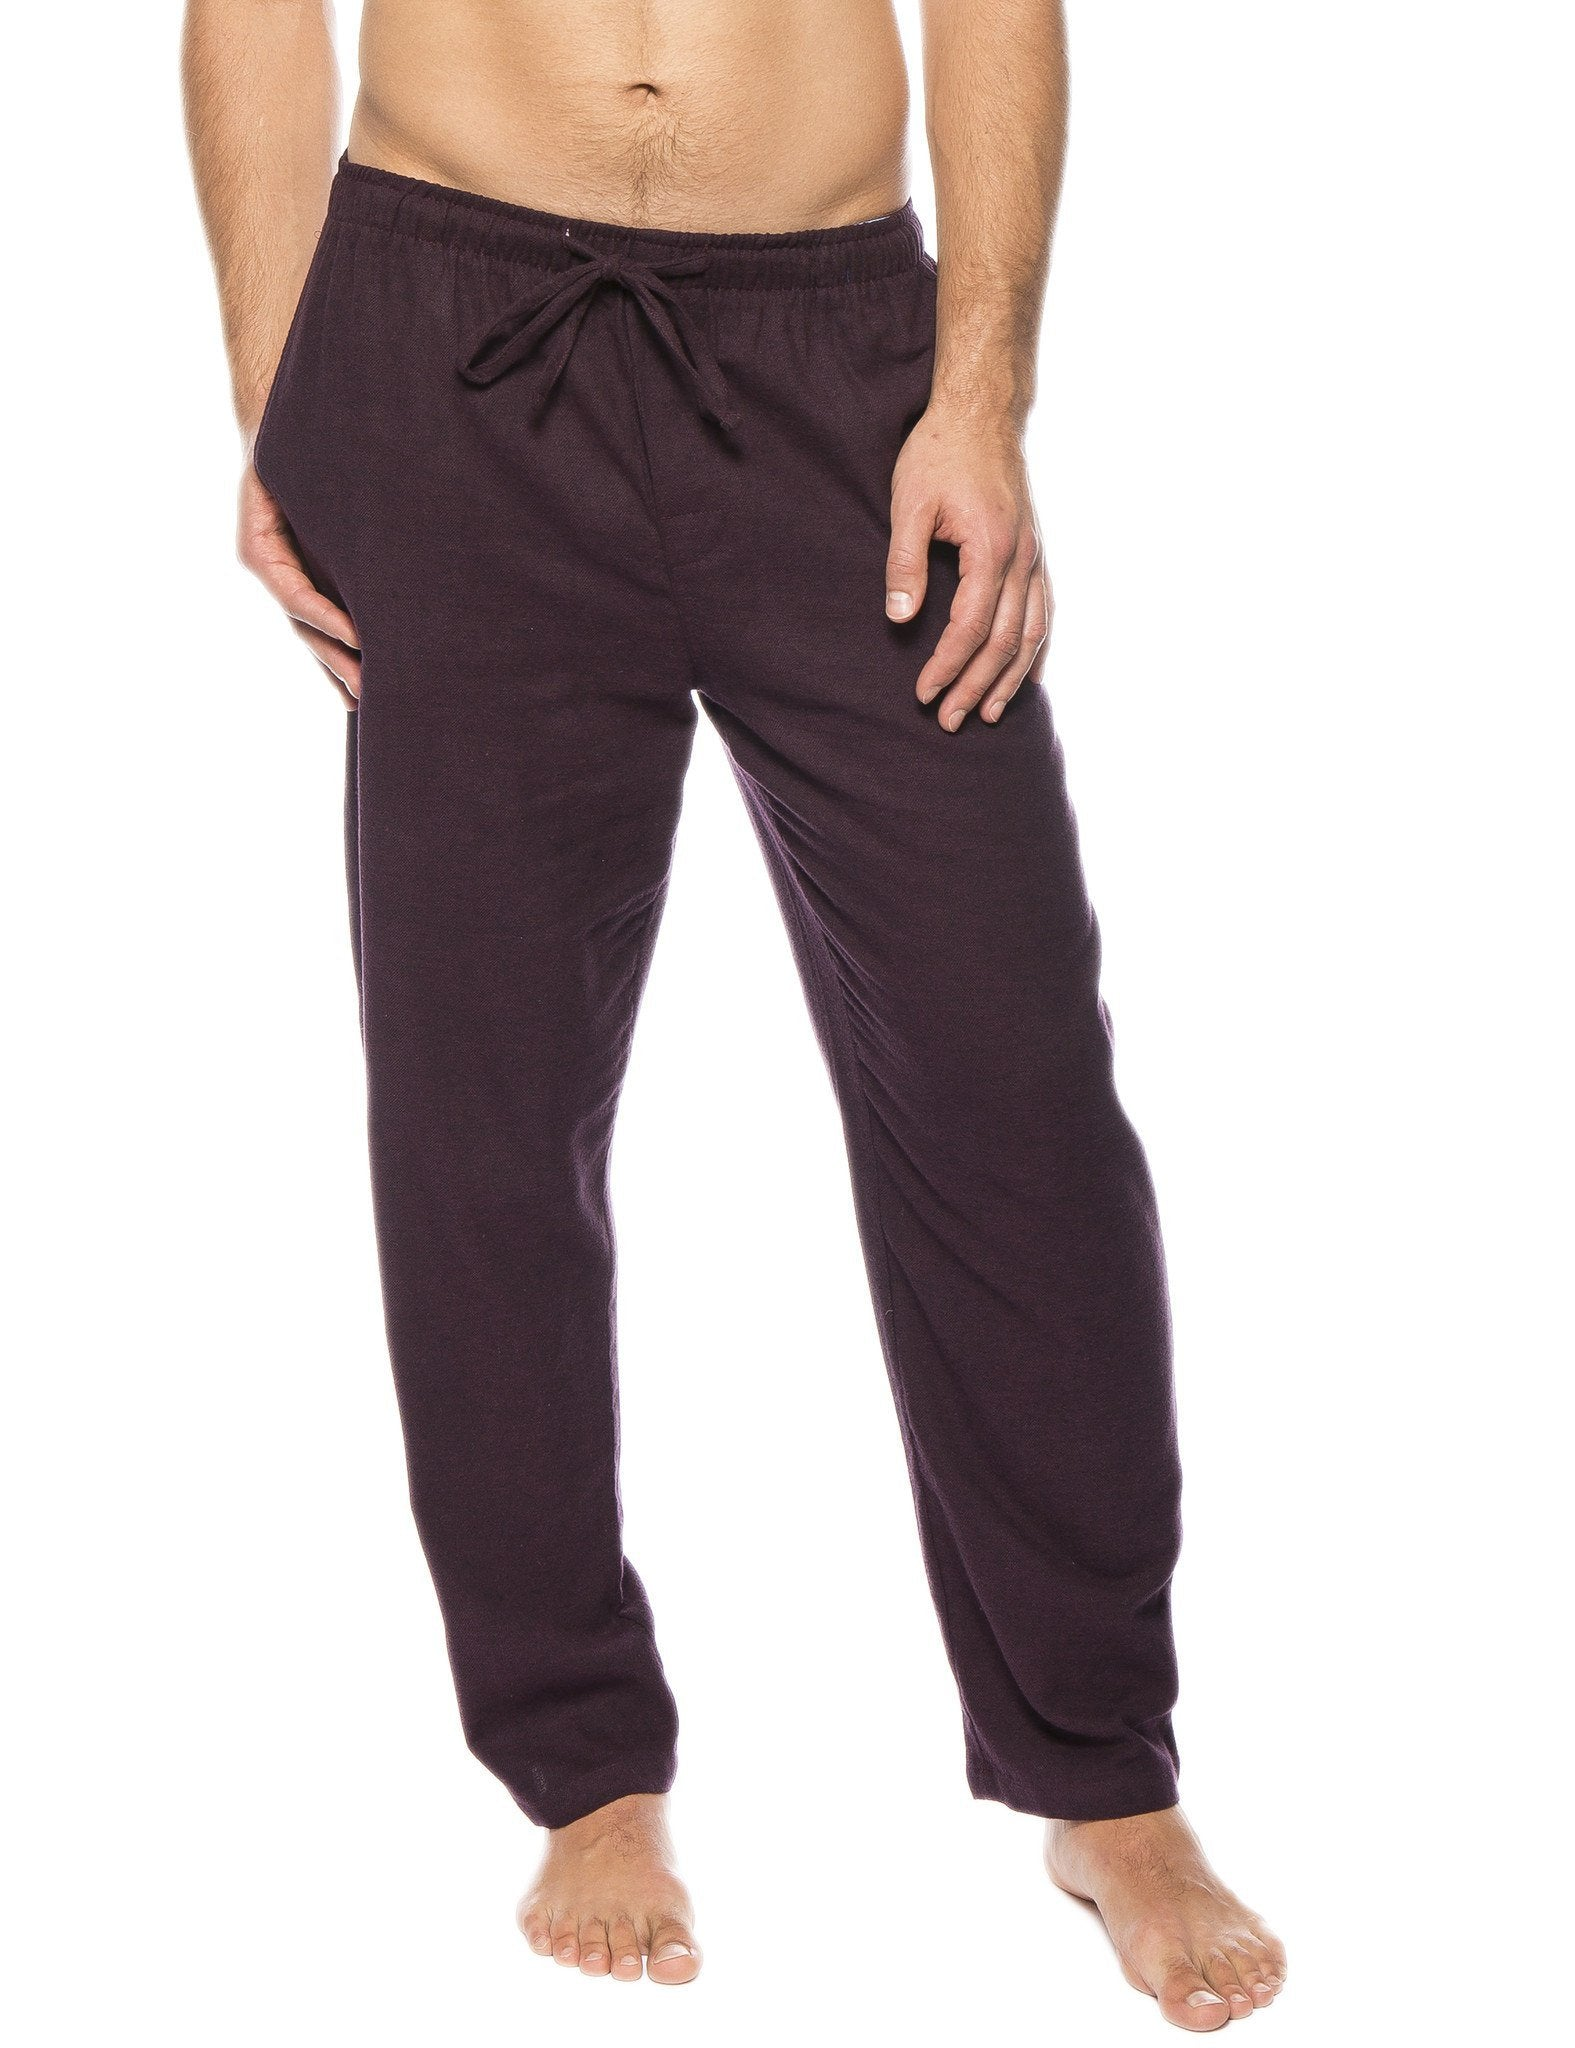 Men's 100% Cotton Flannel Lounge Pants - Herringbone Fig/Black